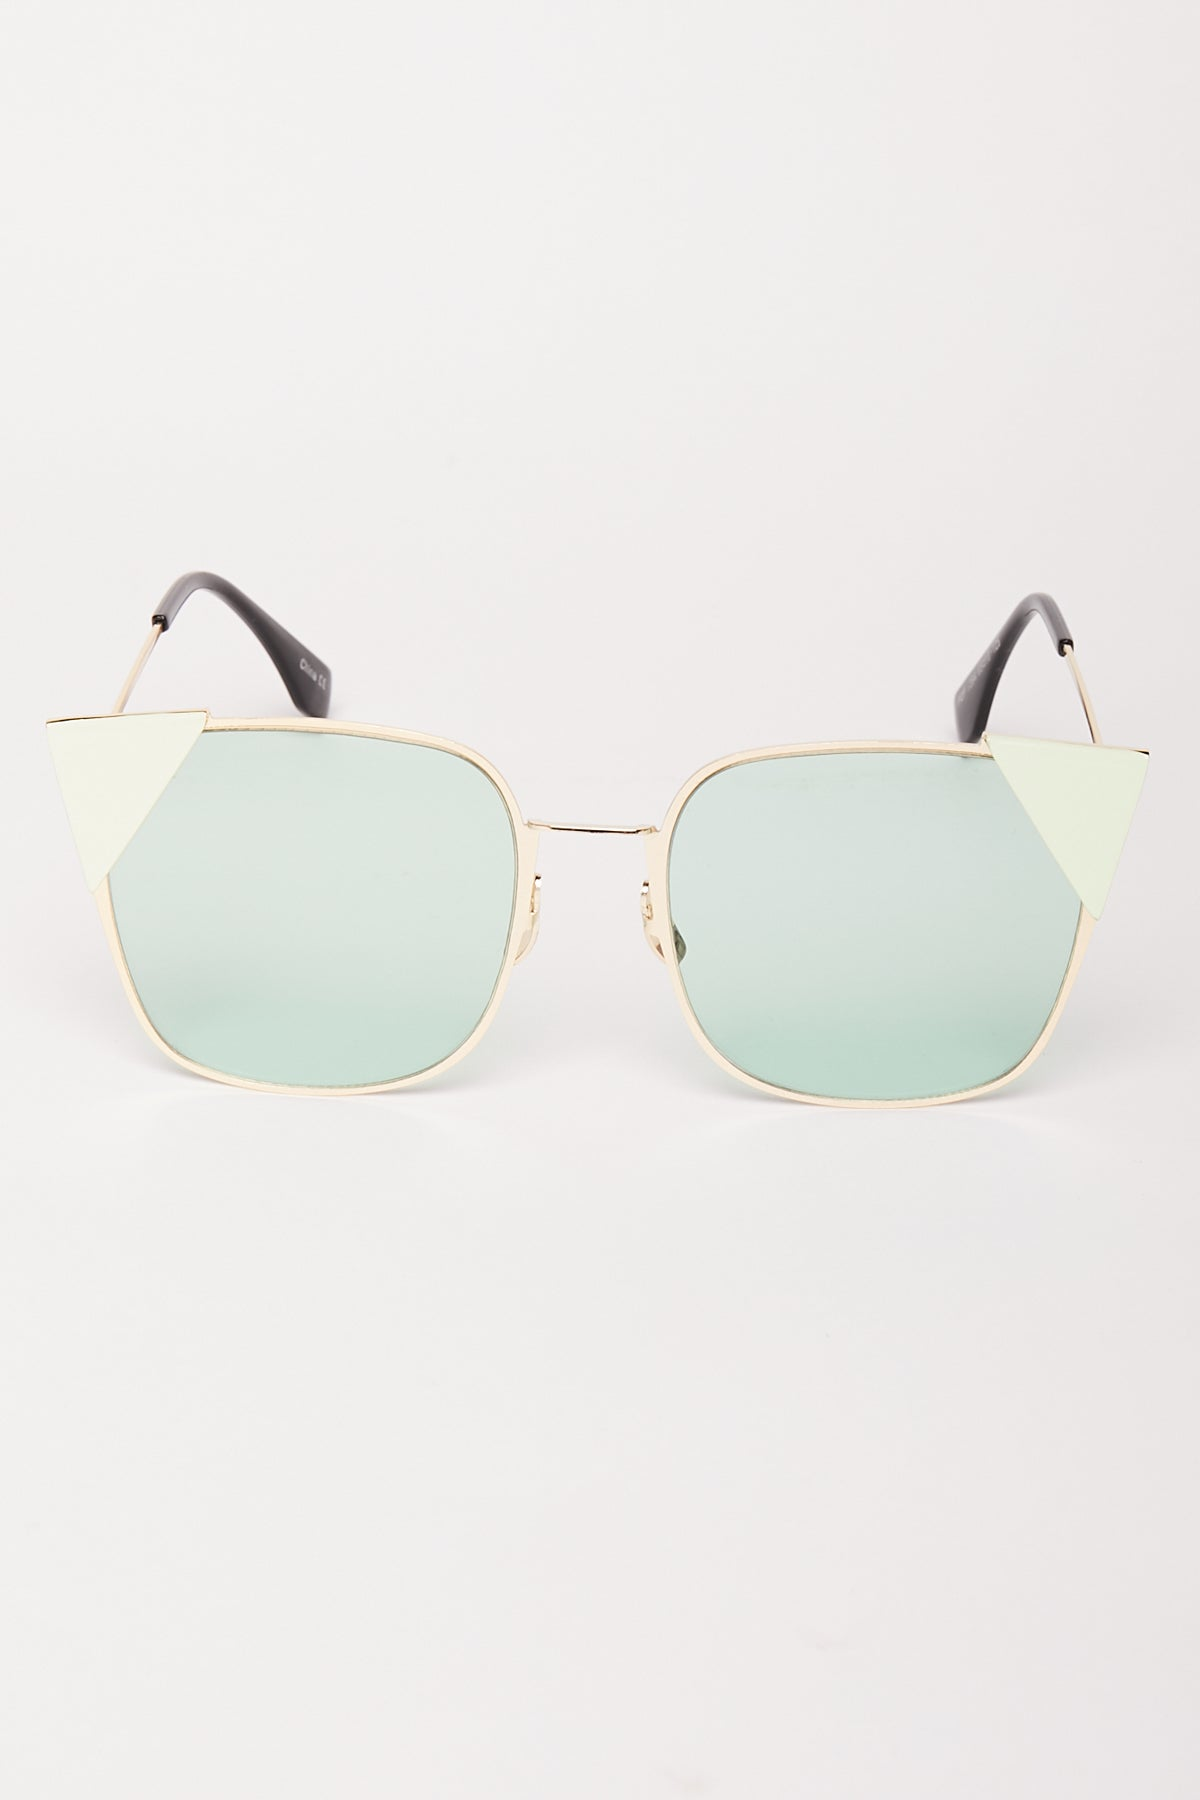 Cateye Sunnies